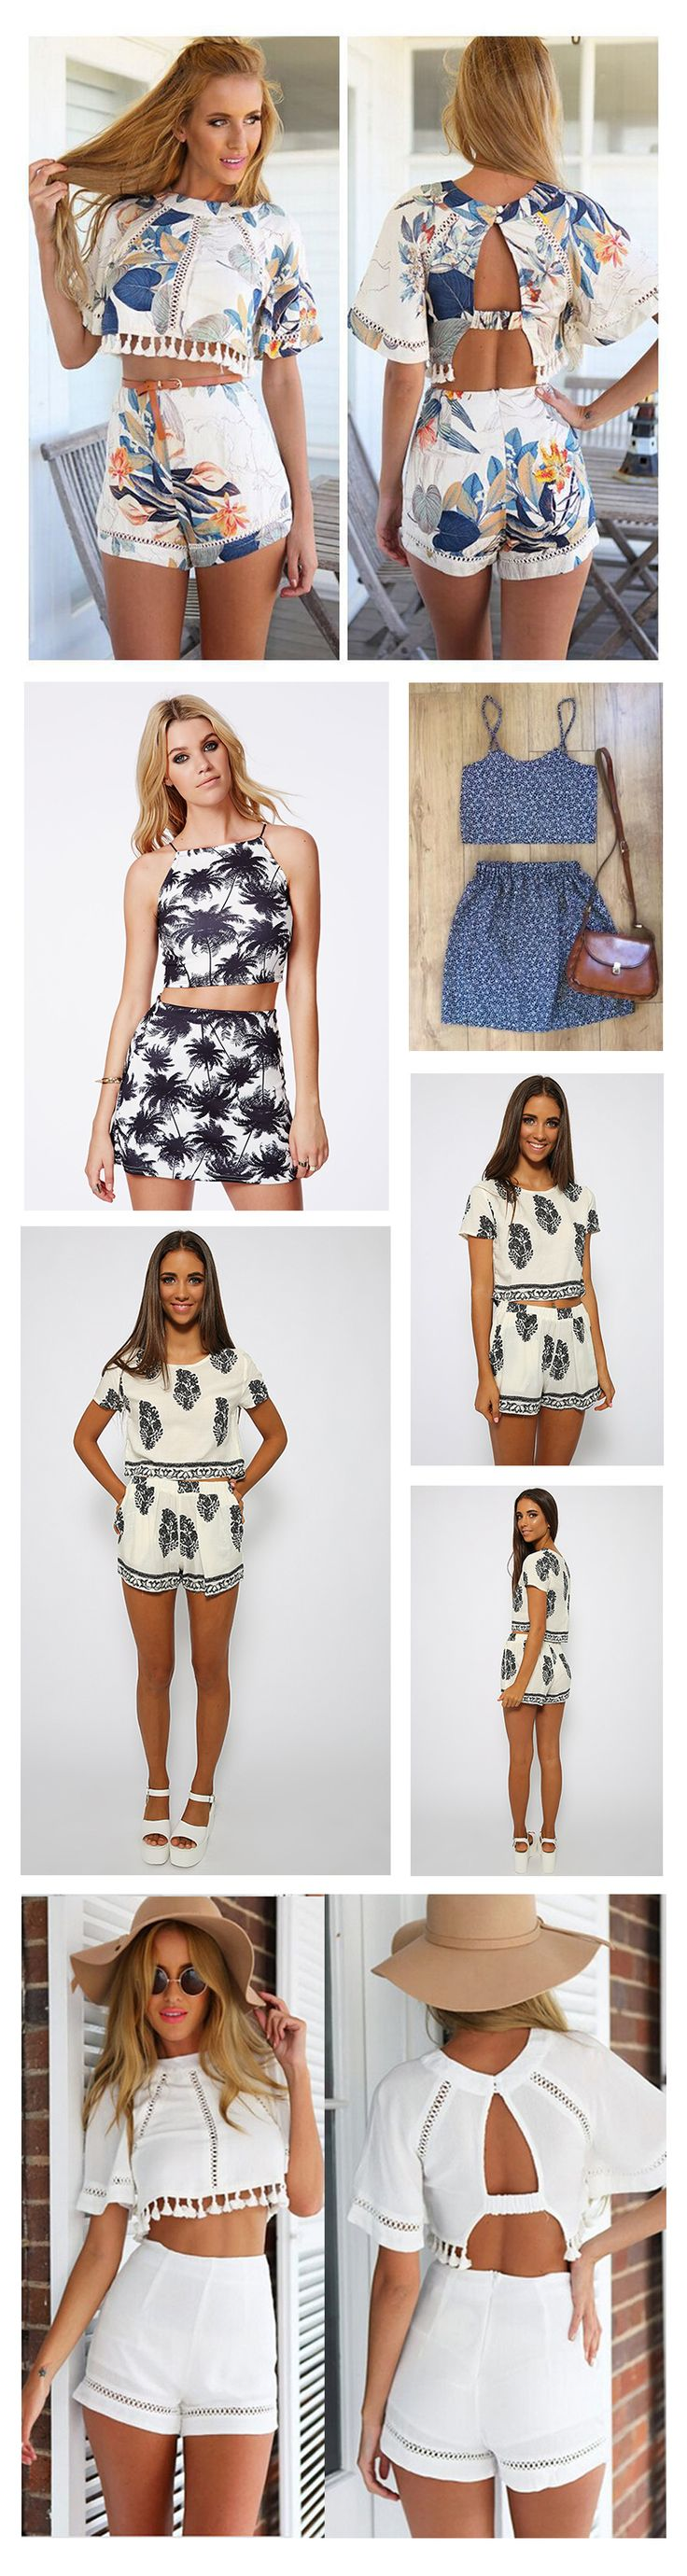 Hot Fashion Trends for Women, Two Piece Outfits!